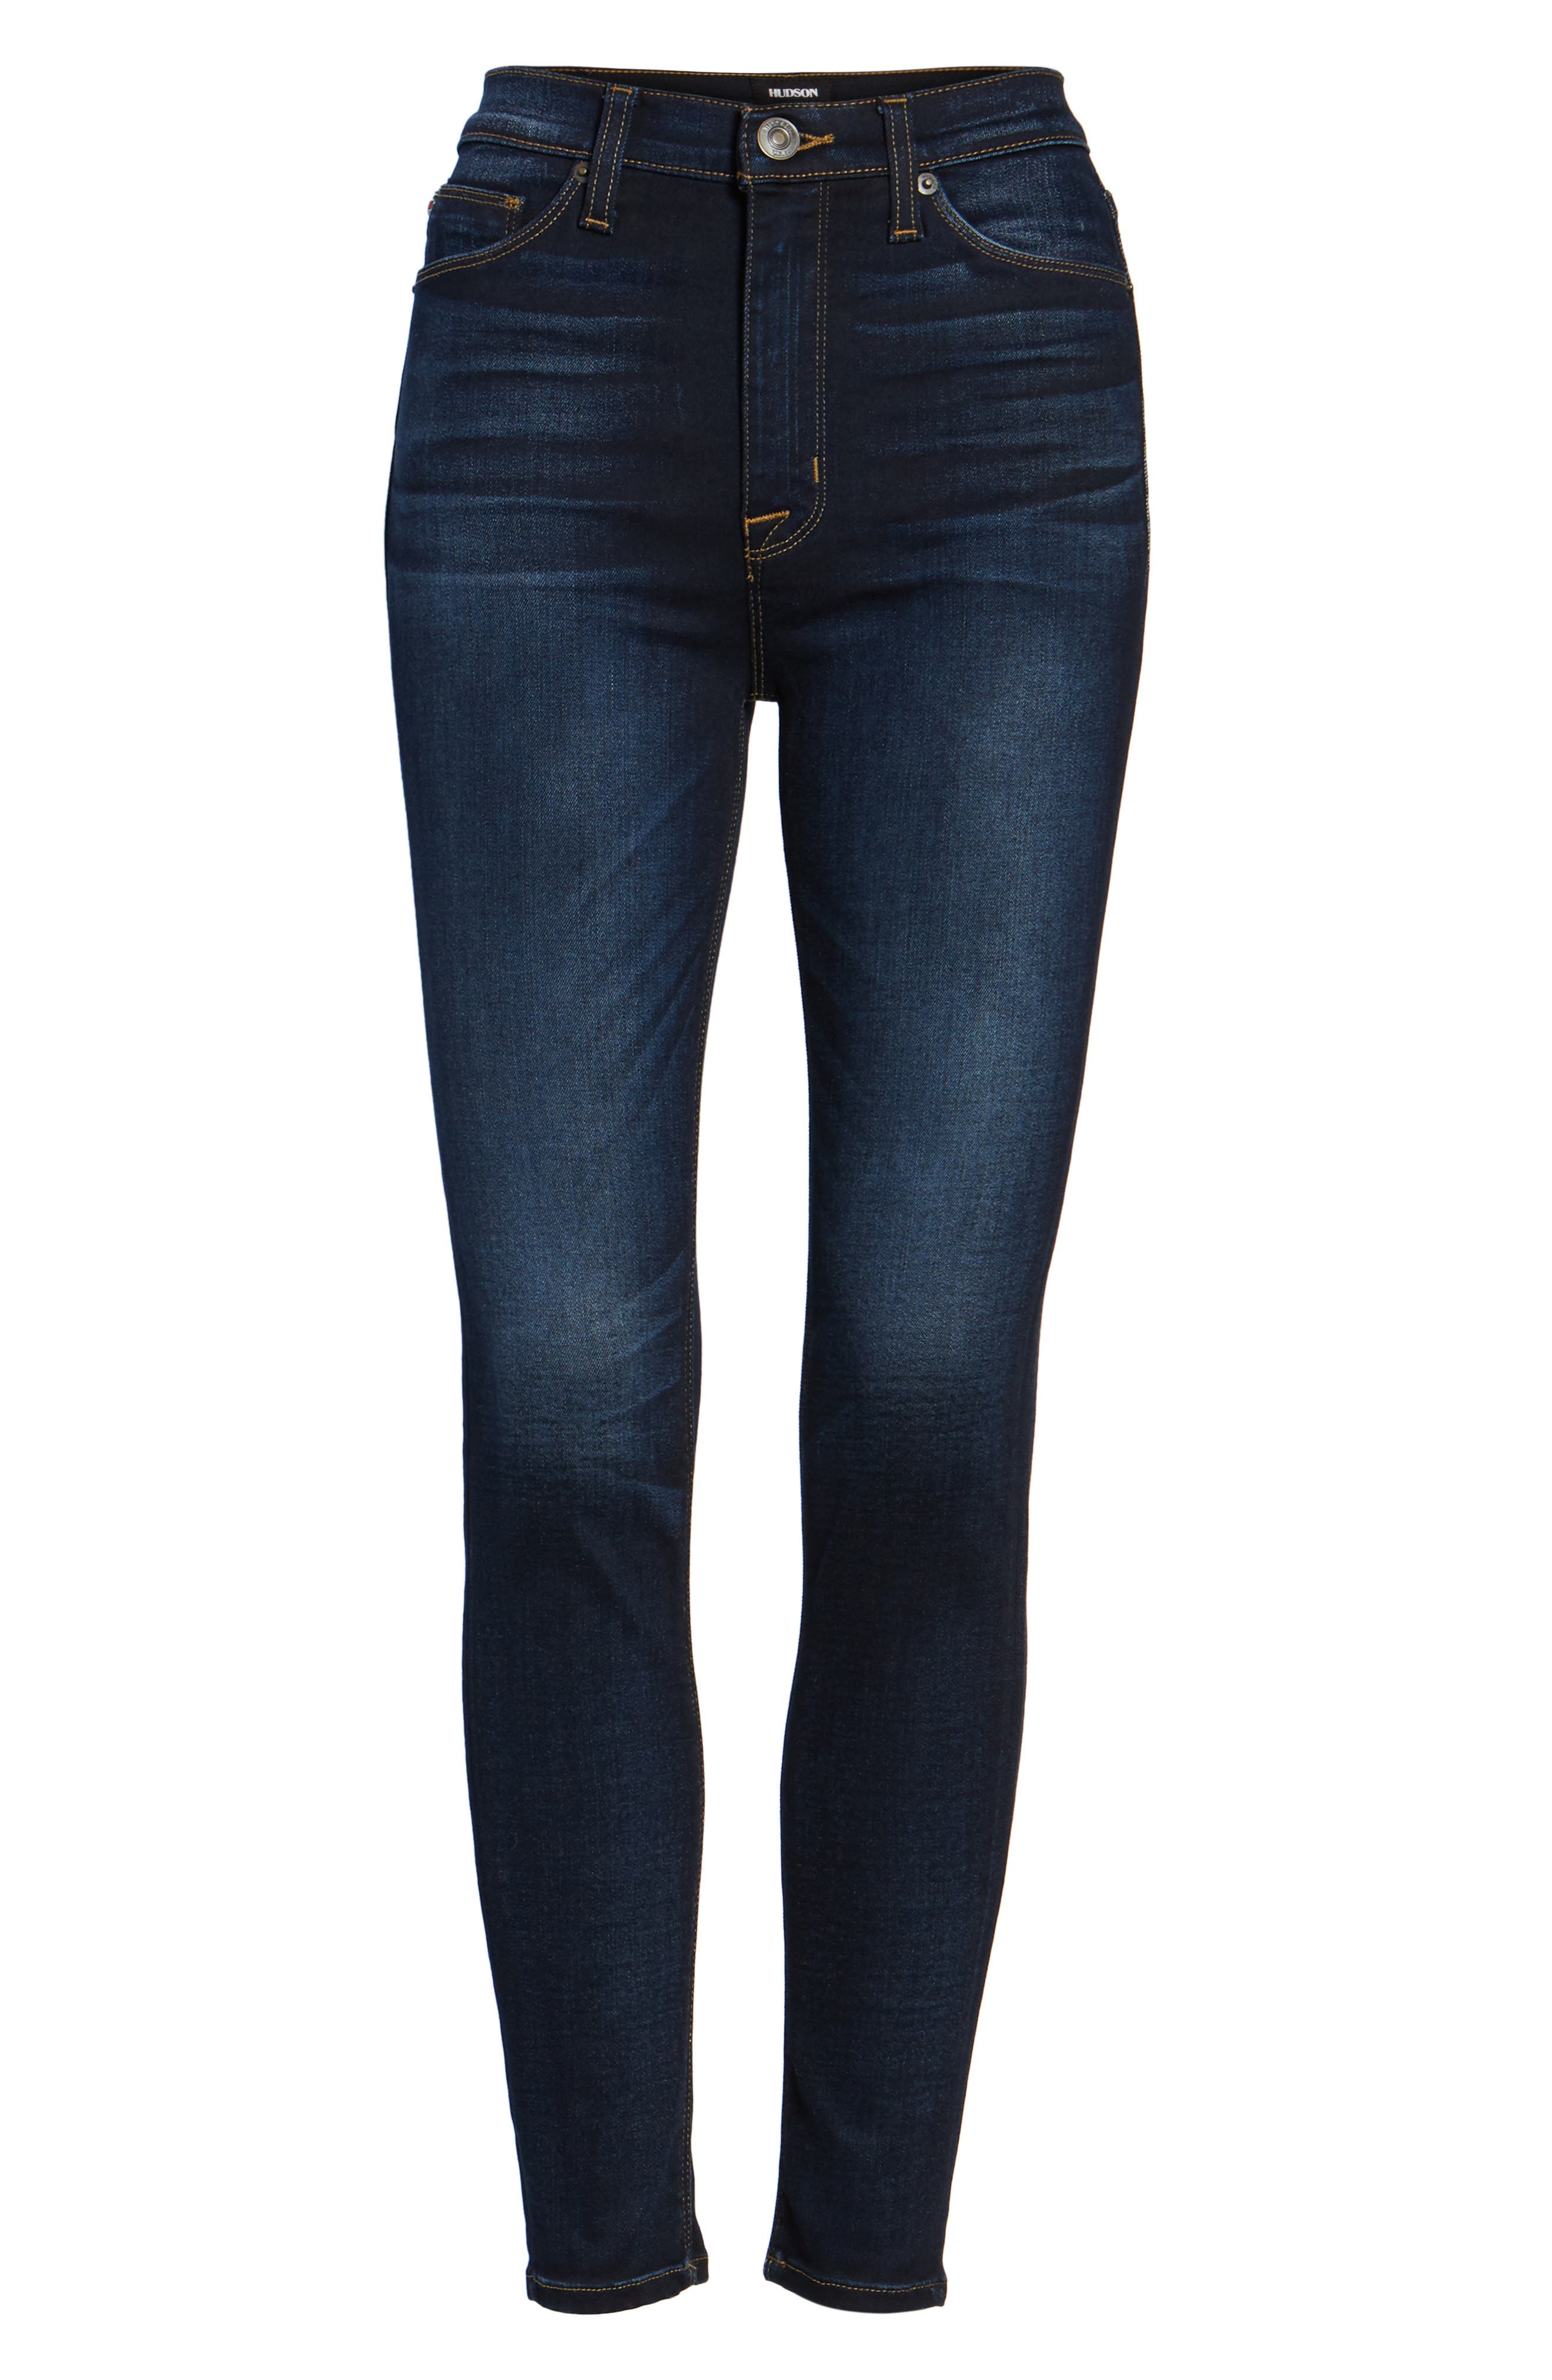 Barbara High Waist Super Skinny Jeans,                             Alternate thumbnail 6, color,                             402